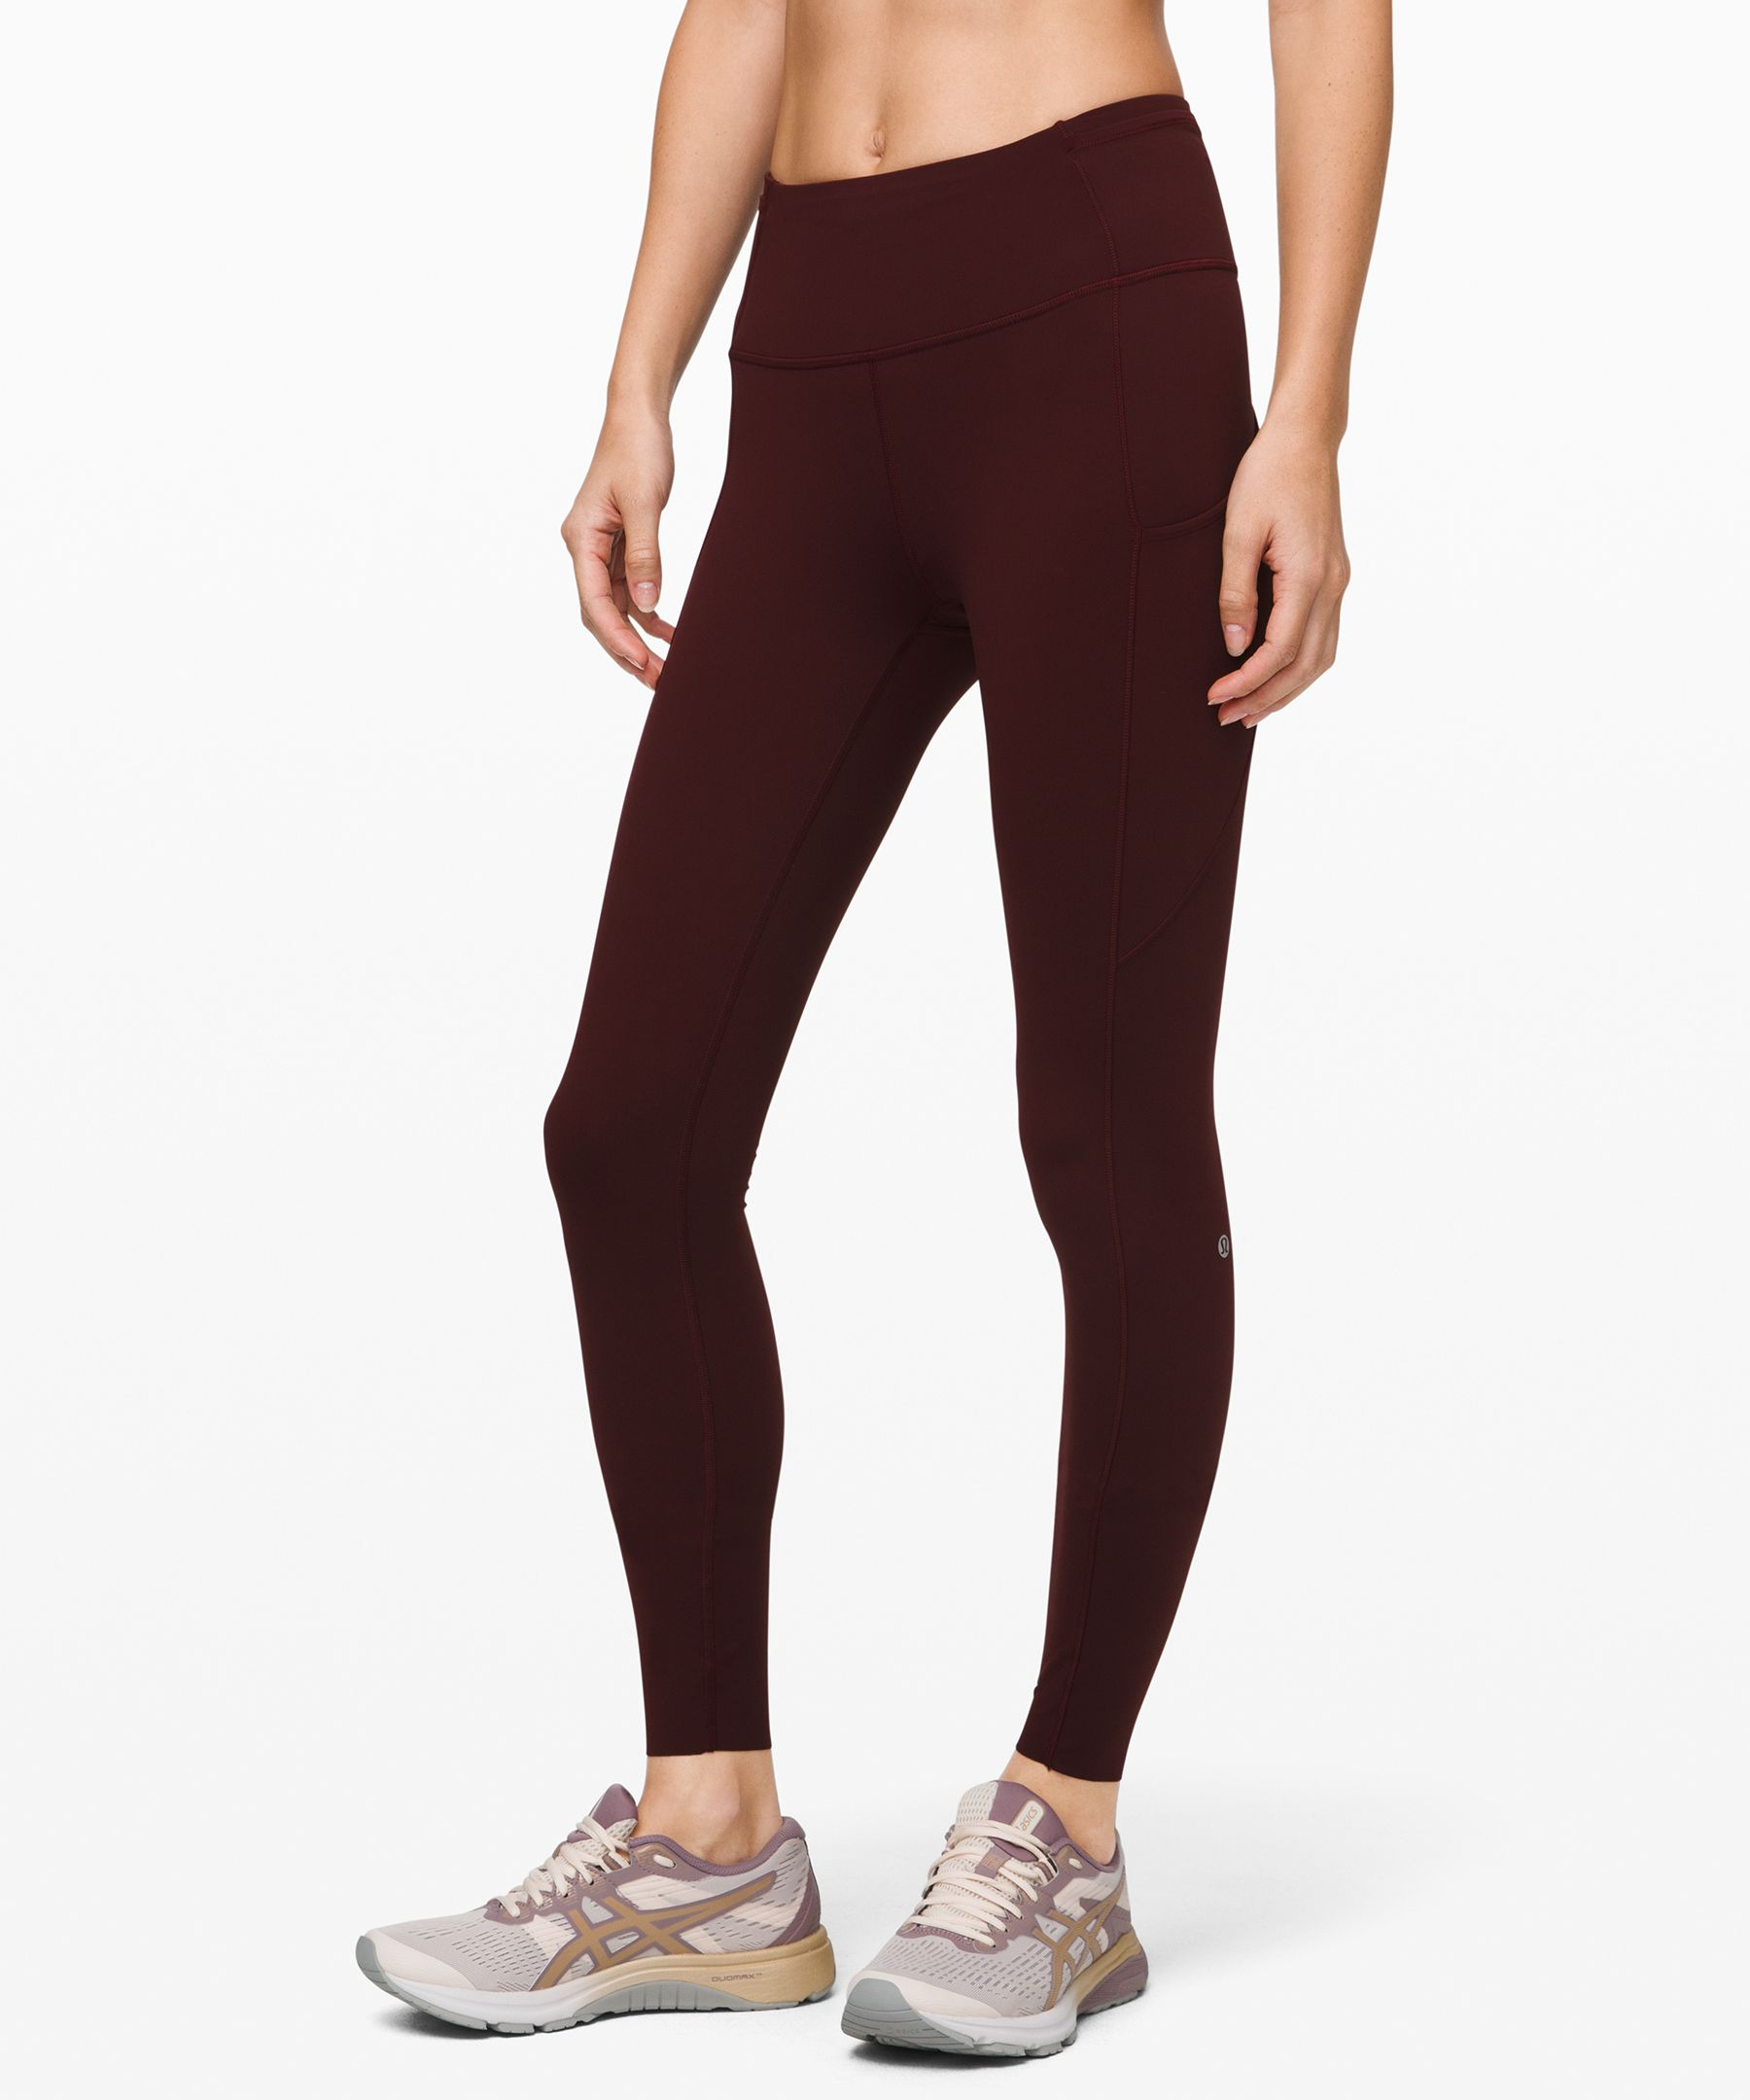 Feel fast and free in these  barely-there feeling tights  that won\\\'t distract you from  picking up the pace. Nulux™  fabric offers near weightless  coverage for a seriously  smooth stride.